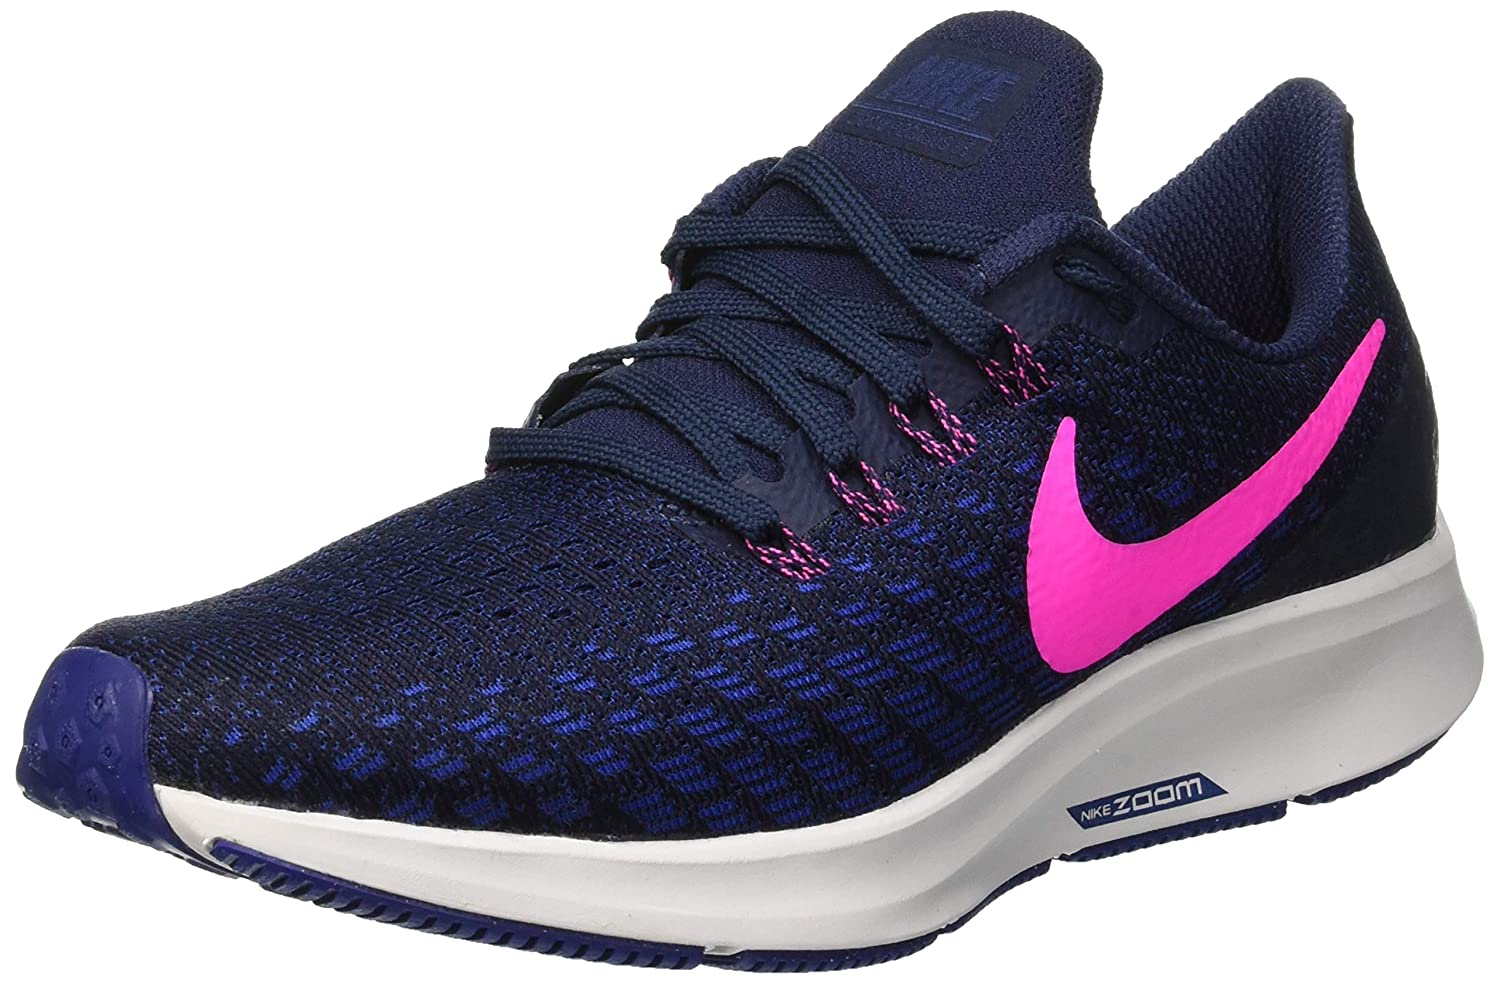 Multicolord (Obsidian Pink Blast Deep Royal bluee 401) Nike Women's Air Zoom Pegasus 35 Running shoes